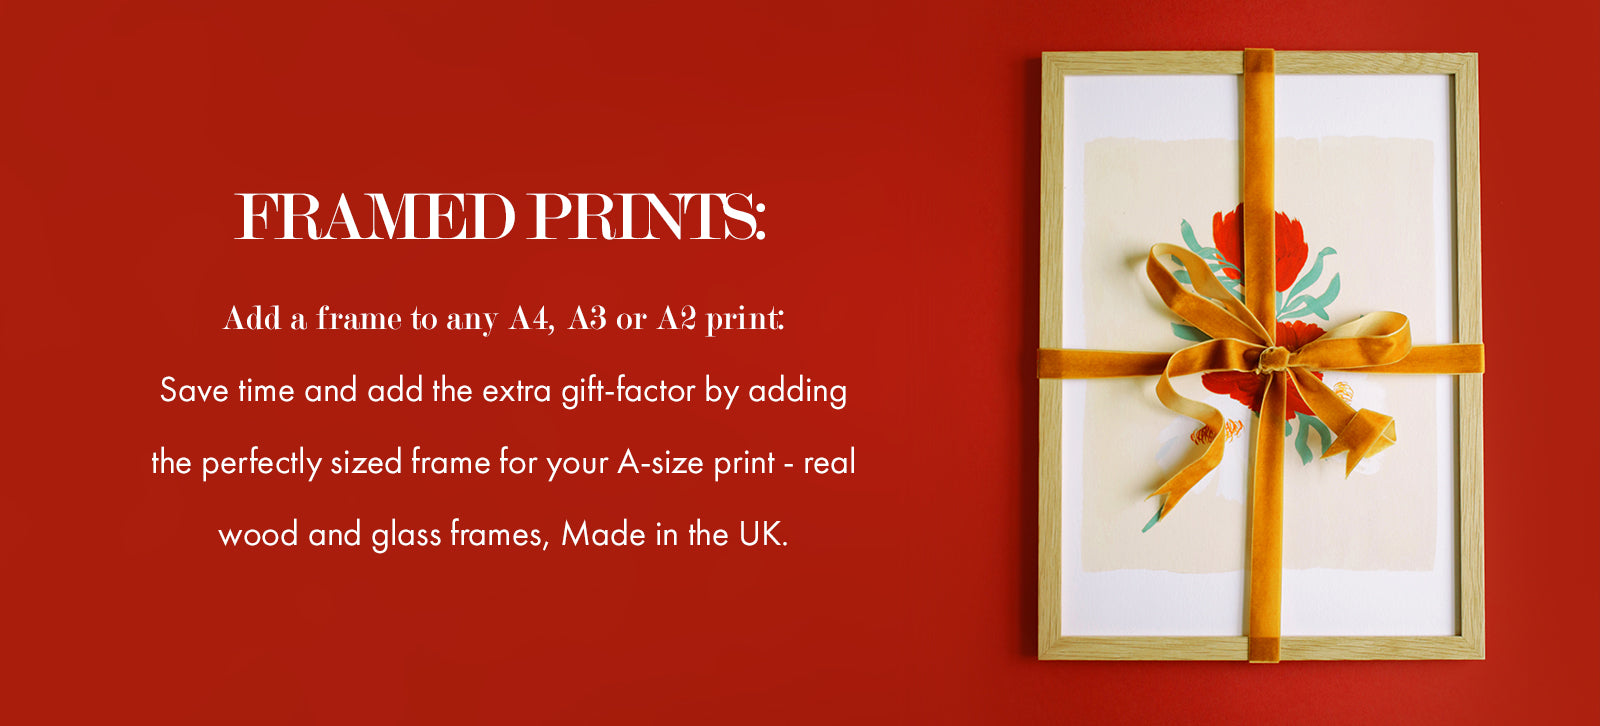 Add a frame to any A4, A3 or A2 print: Save time and add the extra gift-factor by adding the perfectly sized frame for your A-size print - real wood and glass frames, Made in the UK. (image: a framed print, wrapped in a velvet ribbon, on a red background)